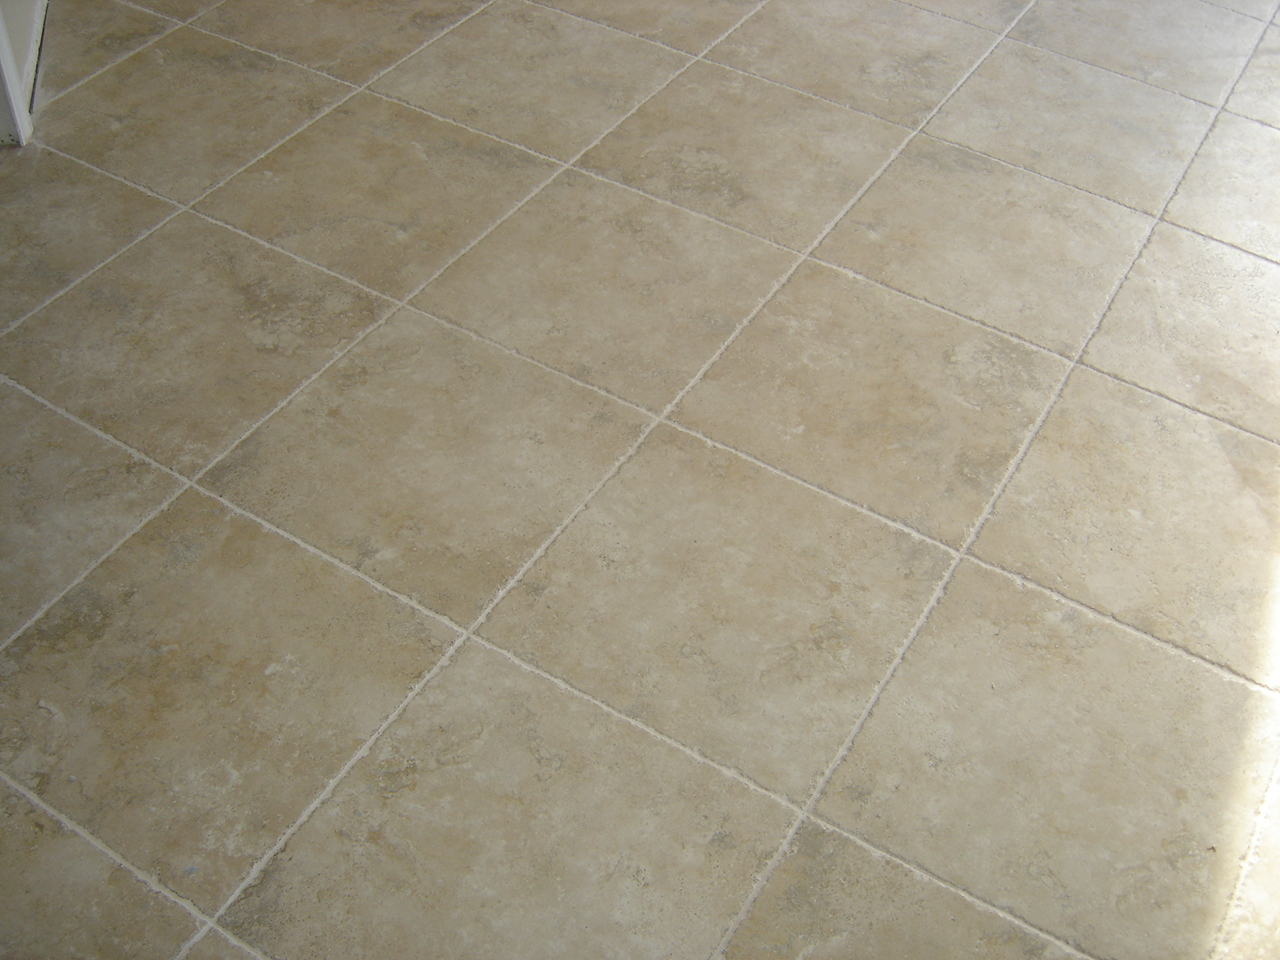 Laminate flooring installing laminate flooring grout for Ceramic laminate flooring